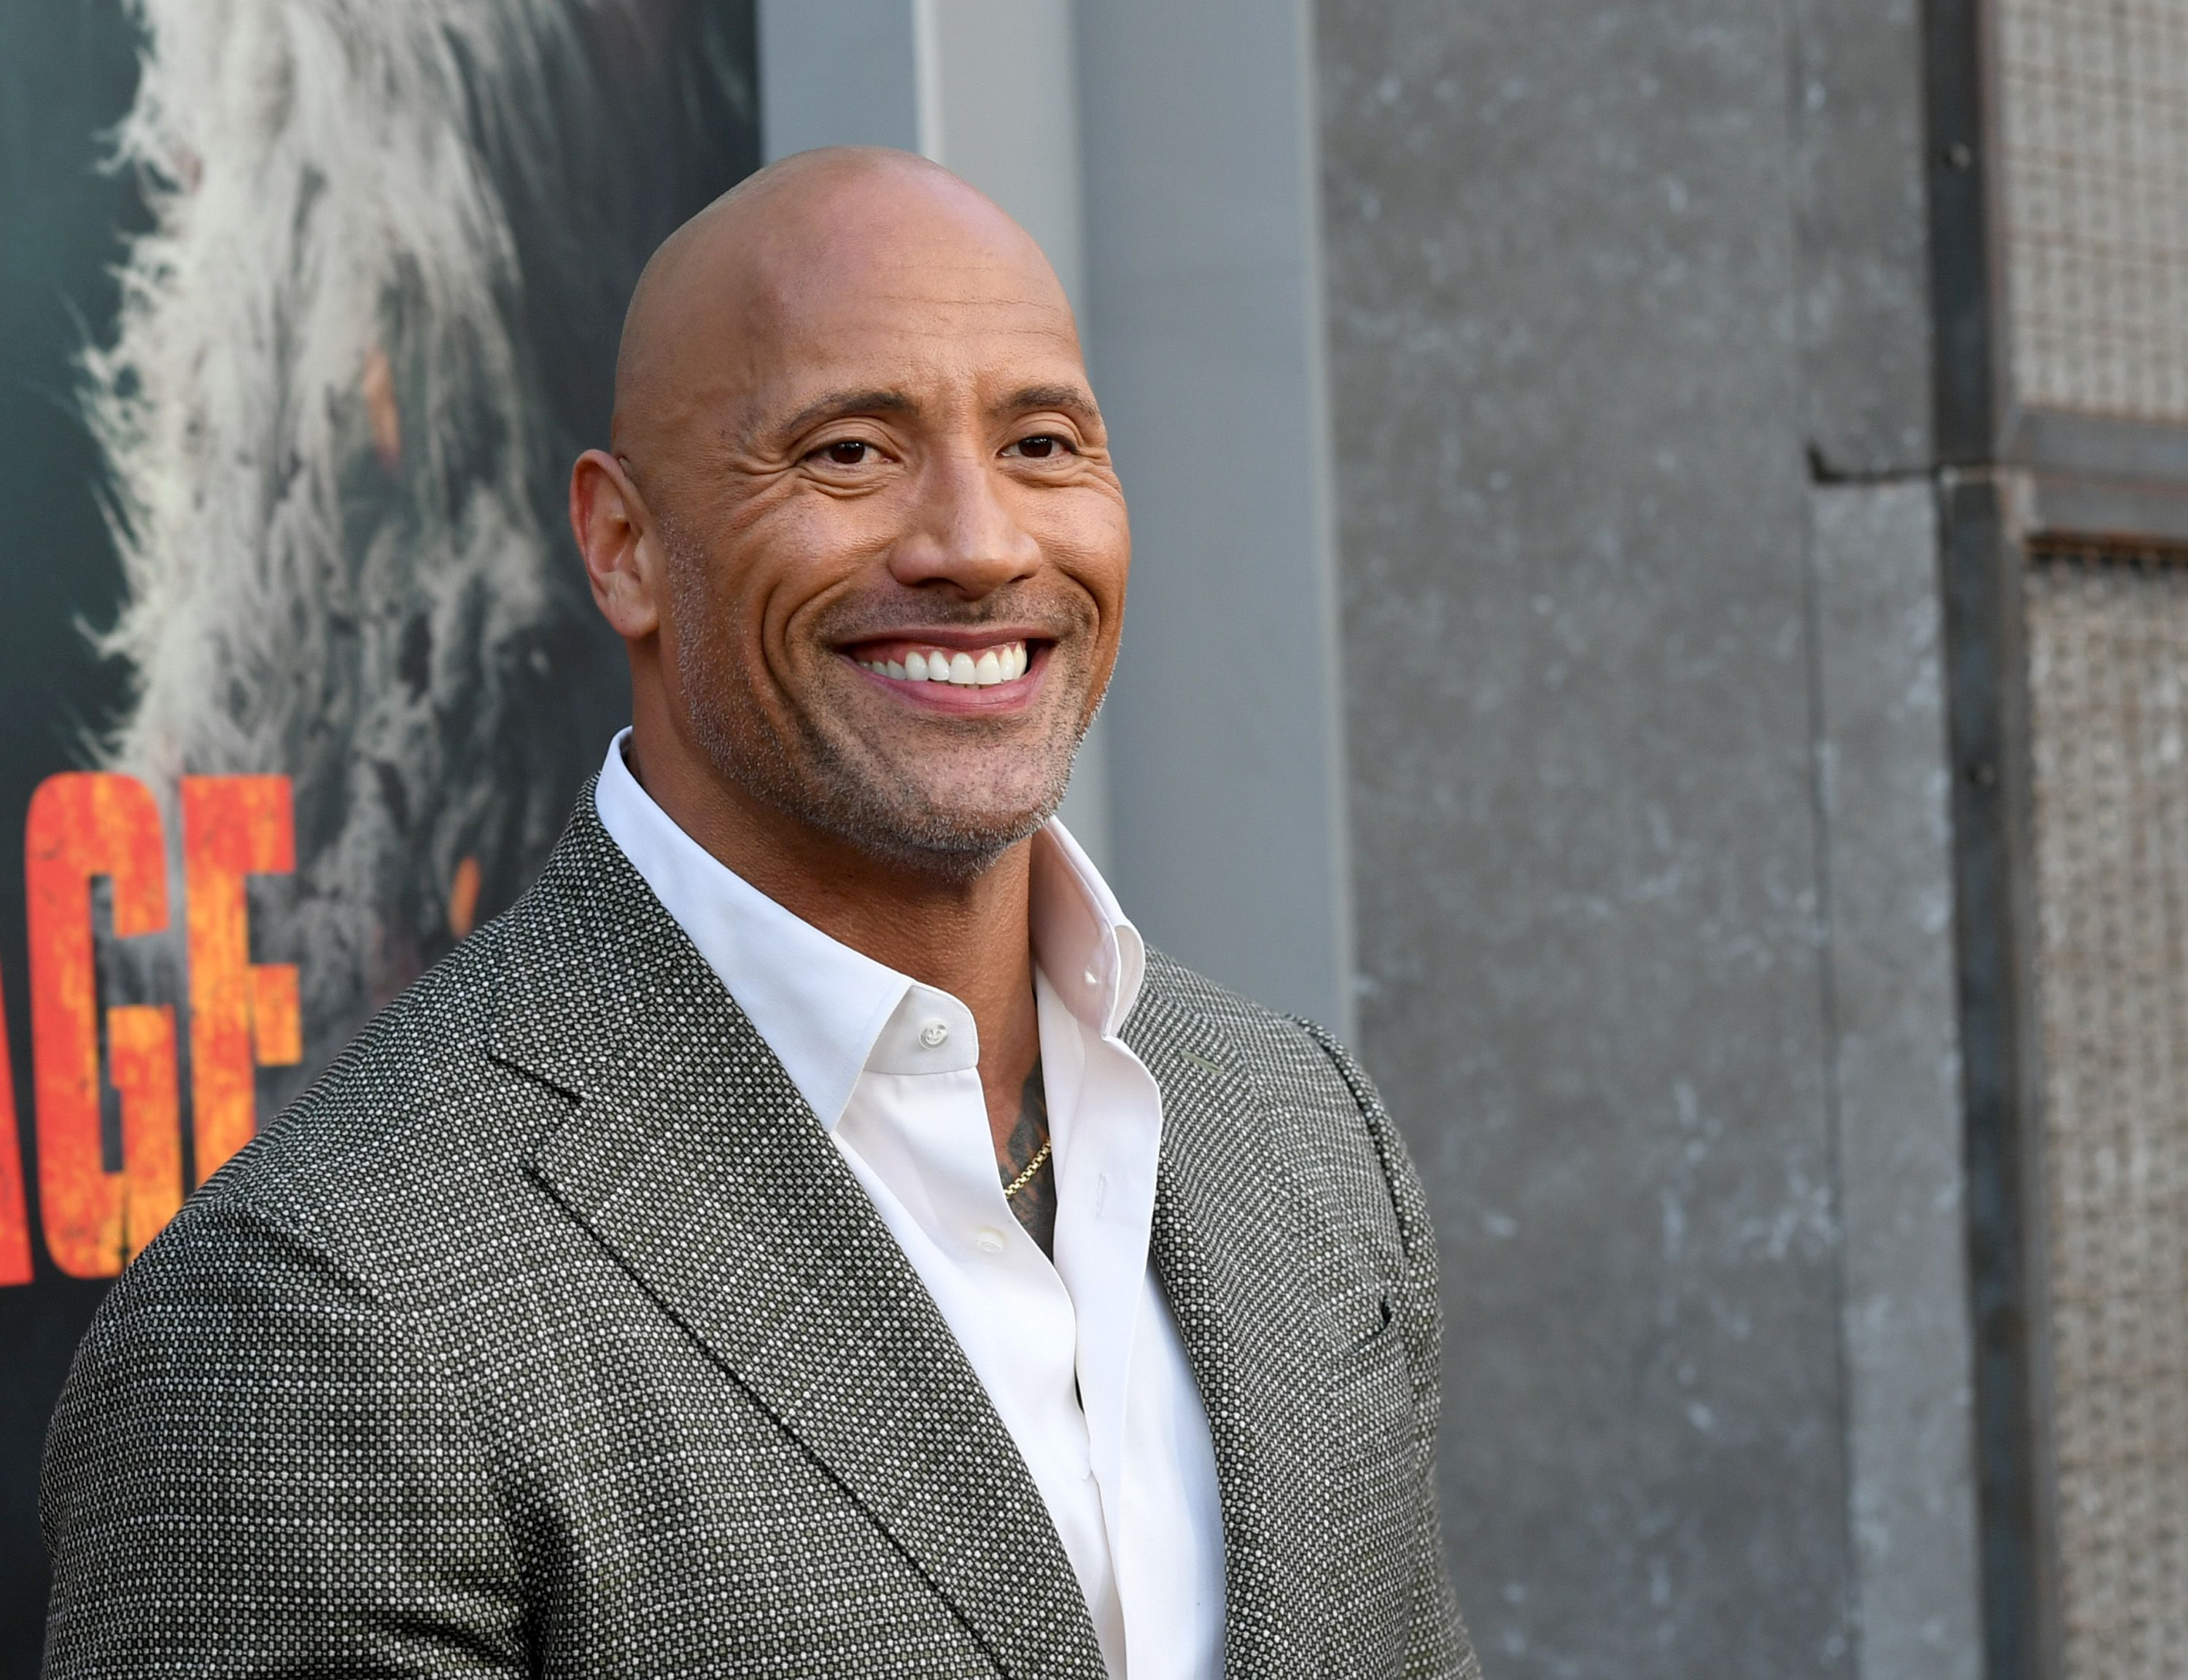 The Rock' Just Shared the First Official Photo From the Fast Furious' Spinoff, and Now We Can't Wait Until Next Summer